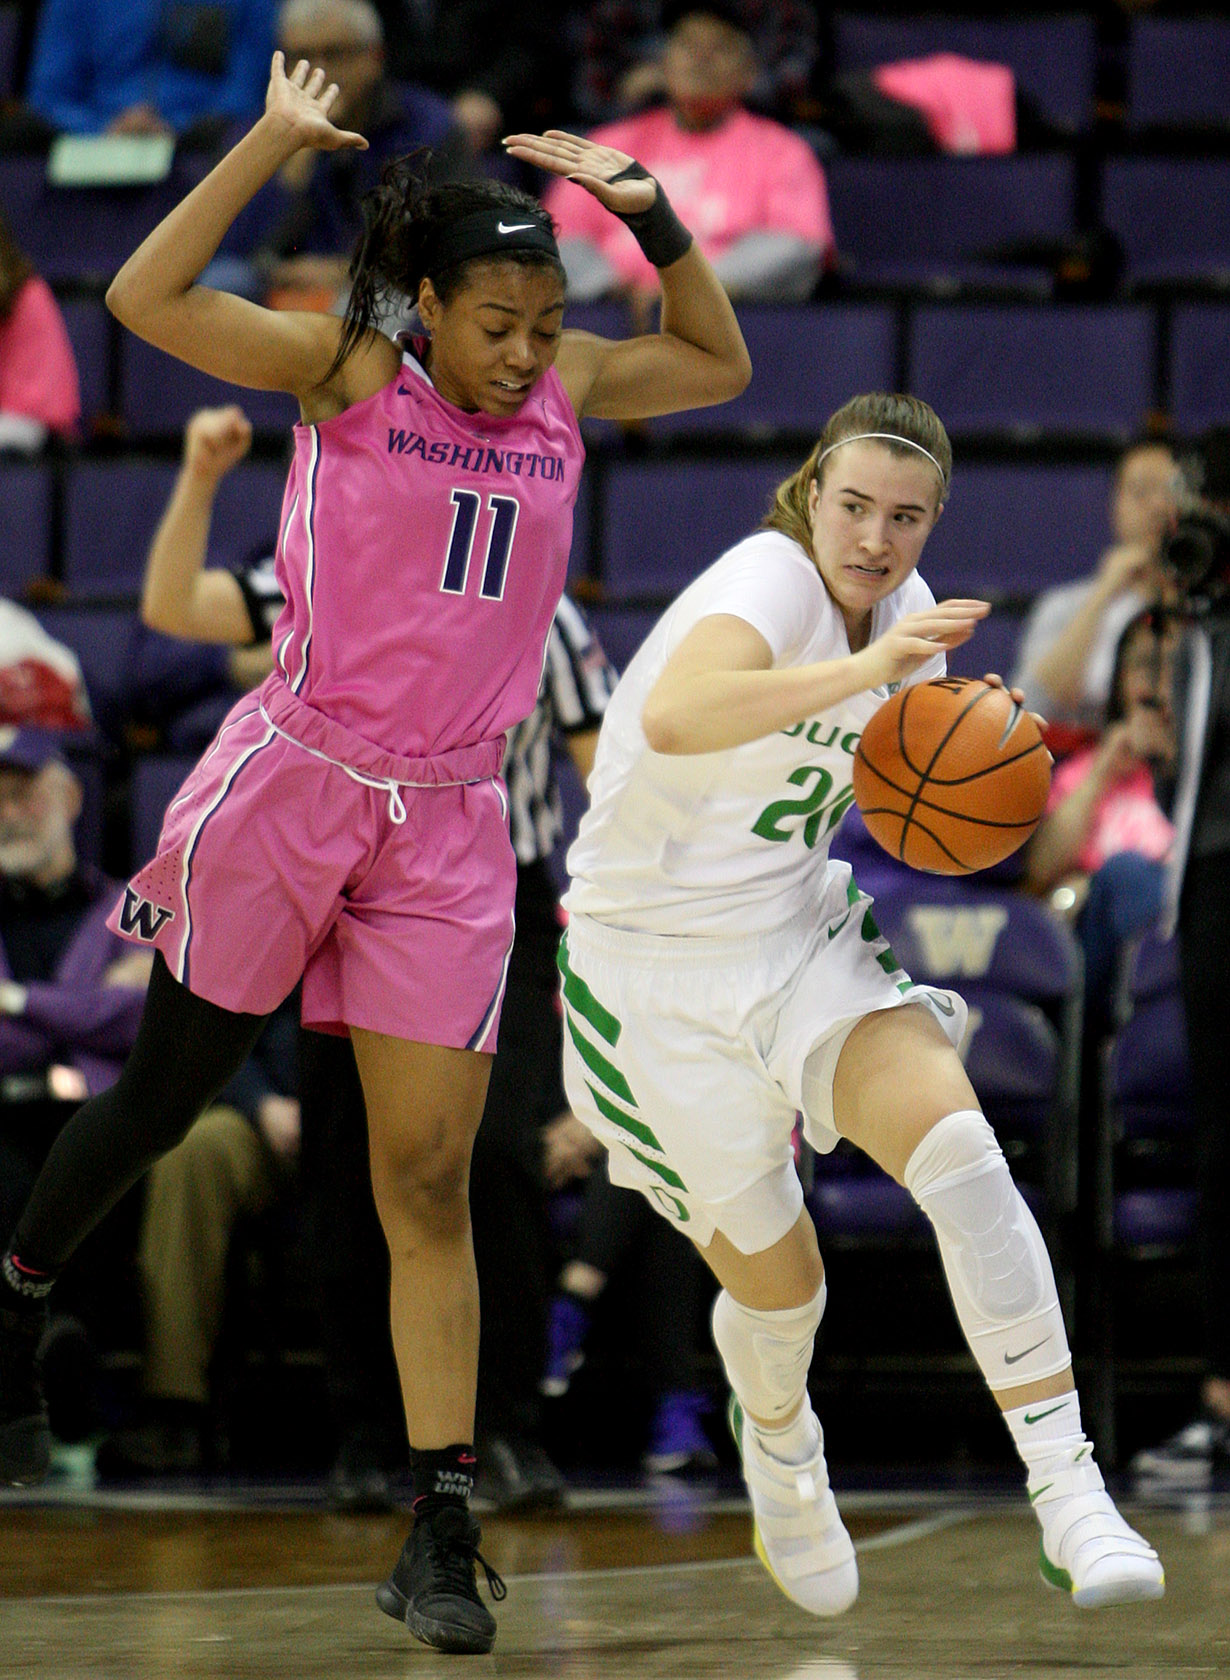 Sabrina lonescu of Oregon is fouled by Washington's Kierra Collier dribbling up court.